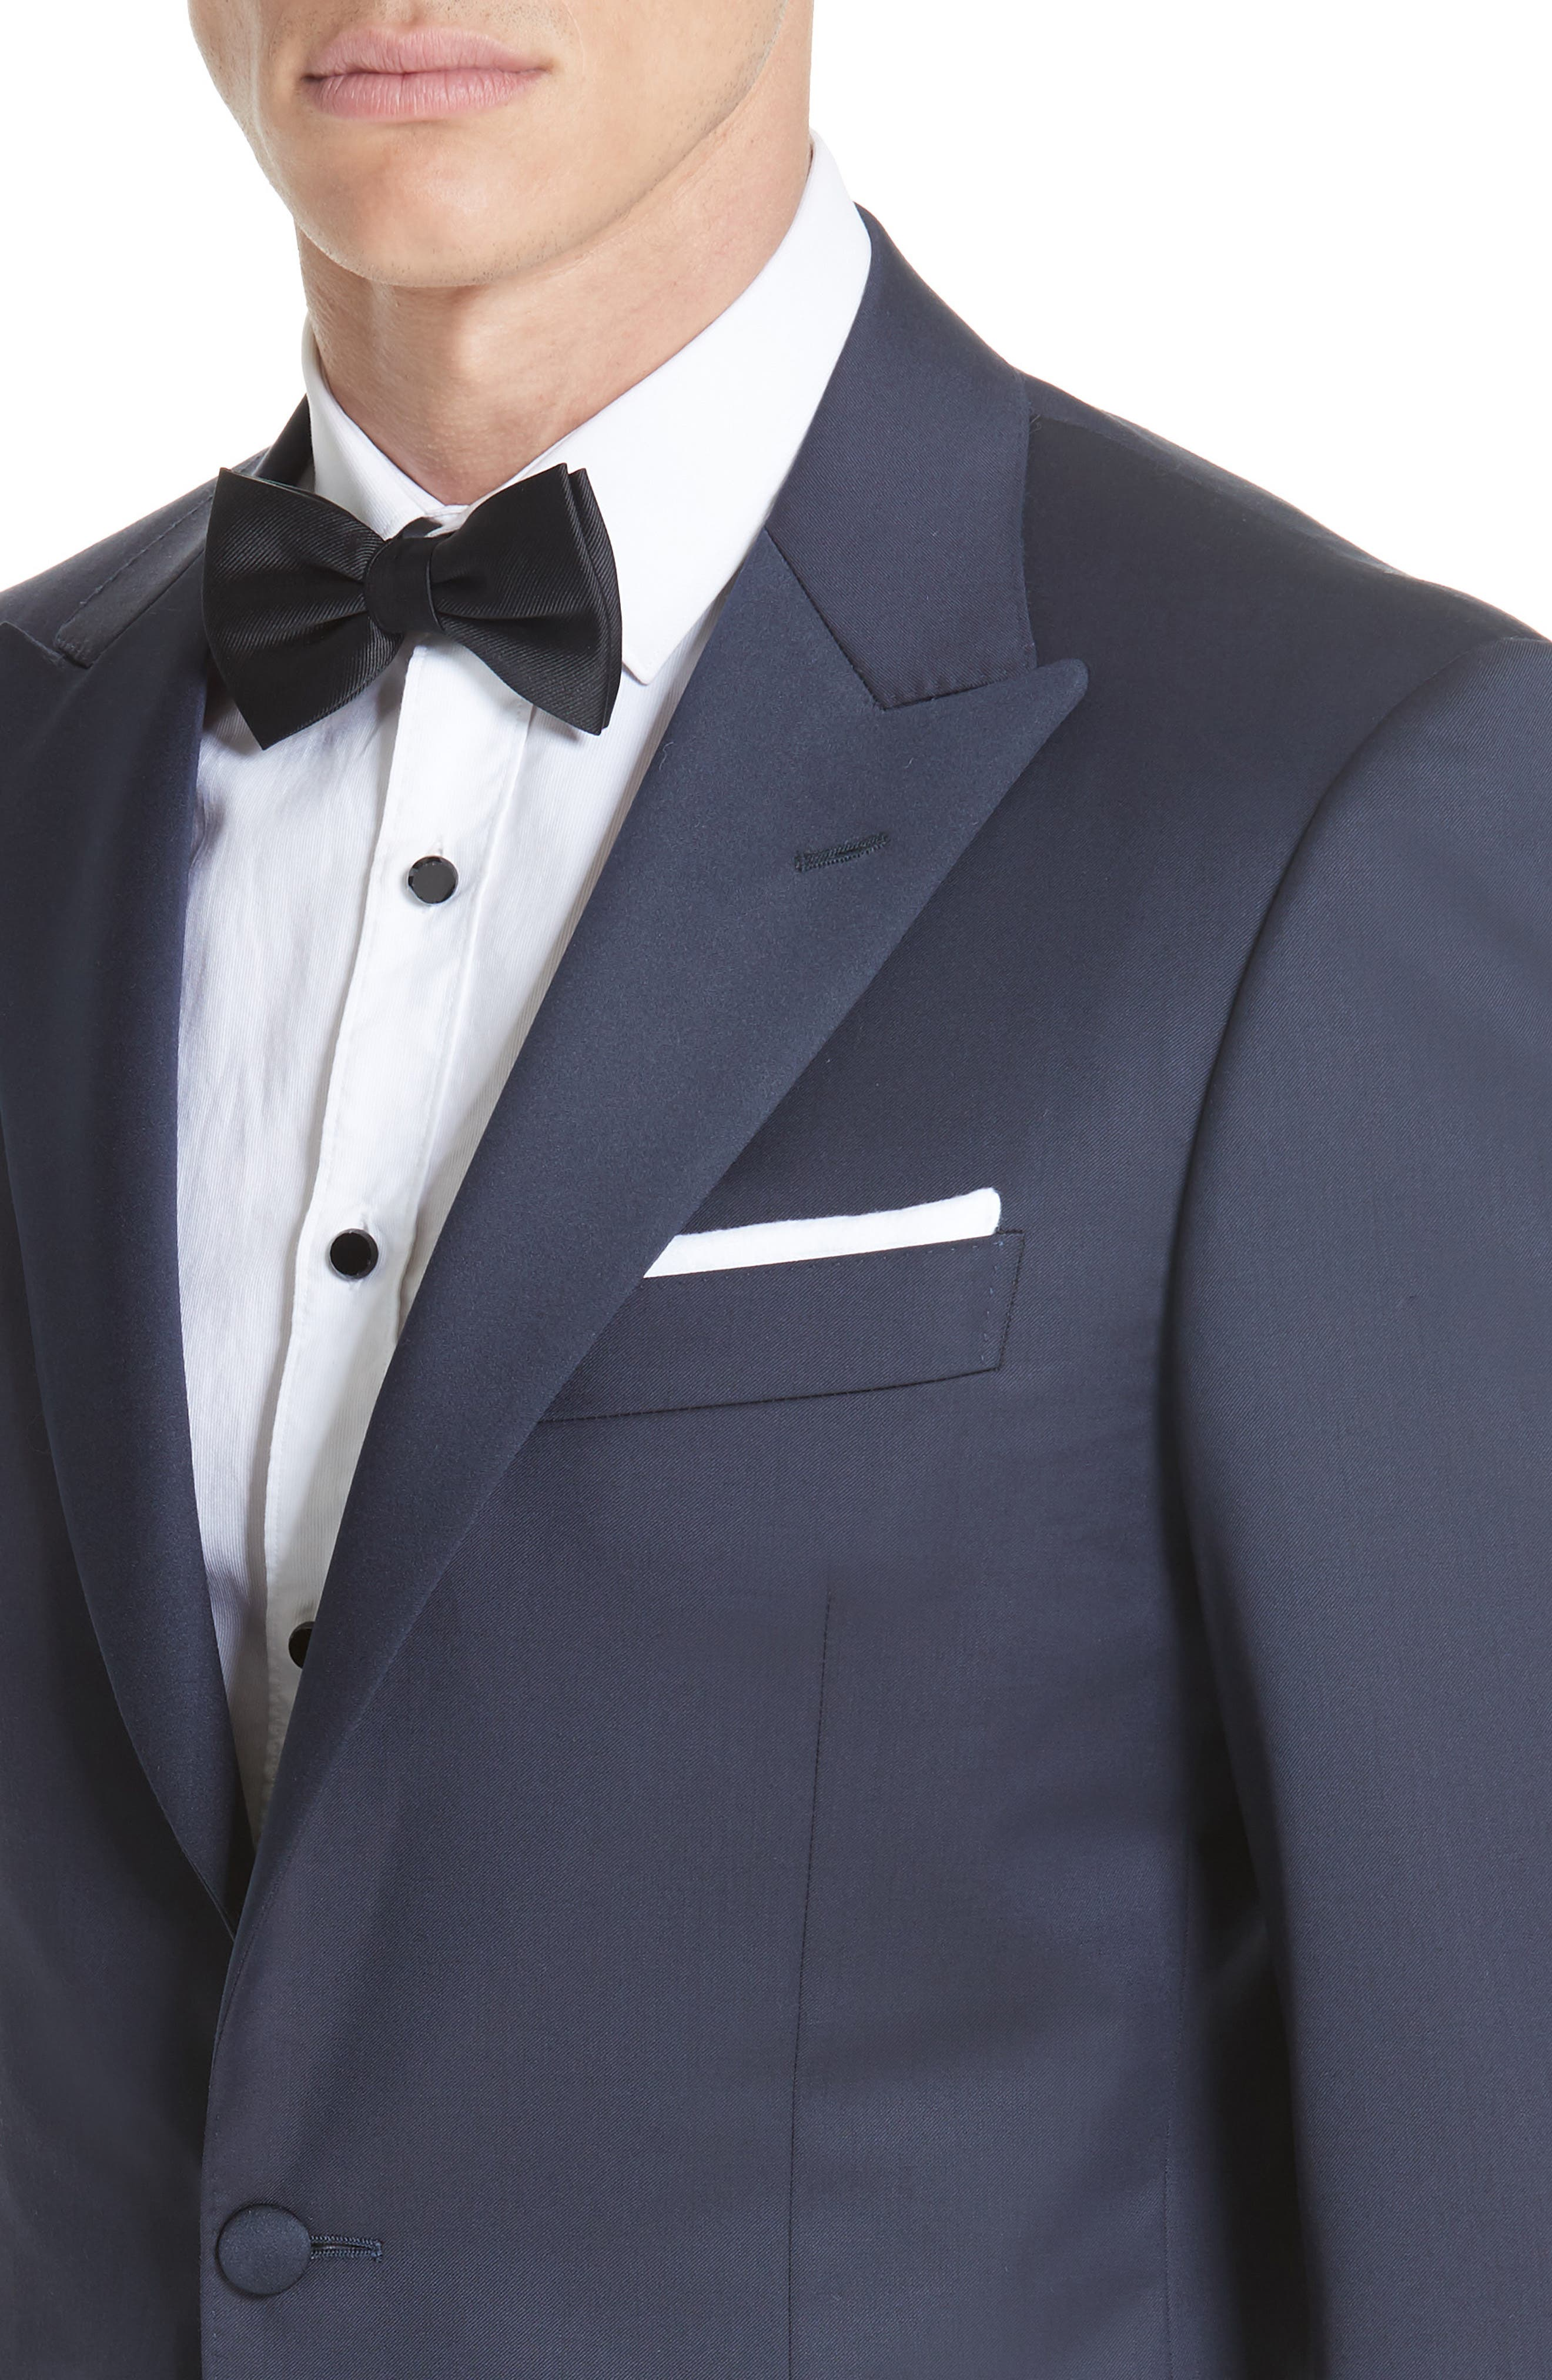 CANALI, Classic Fit Wool Tuxedo, Alternate thumbnail 4, color, NAVY